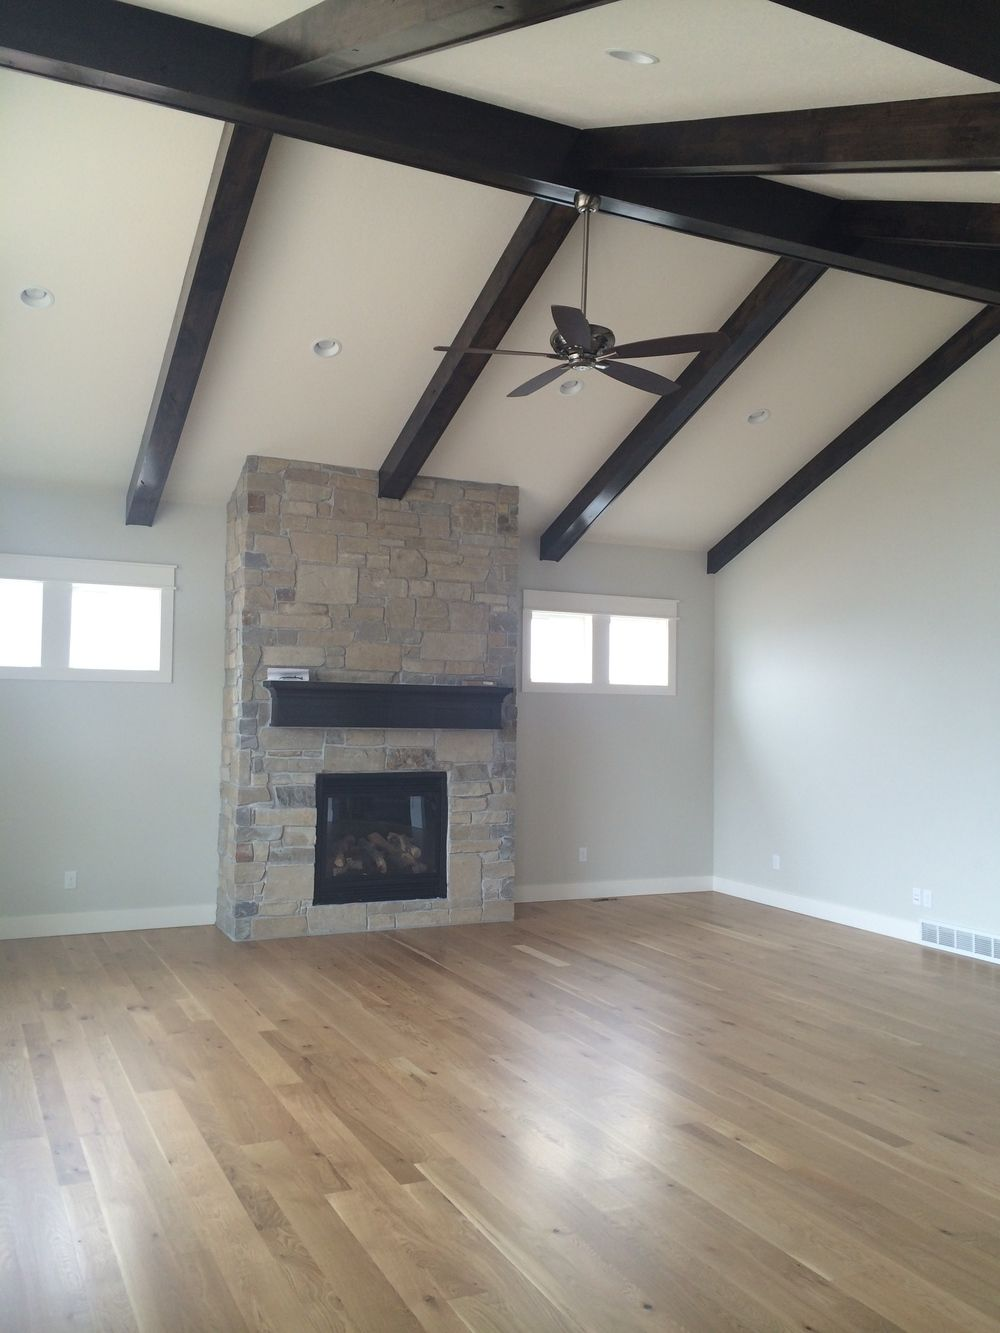 Faux beams highlight the vaulted ceiling The beams and